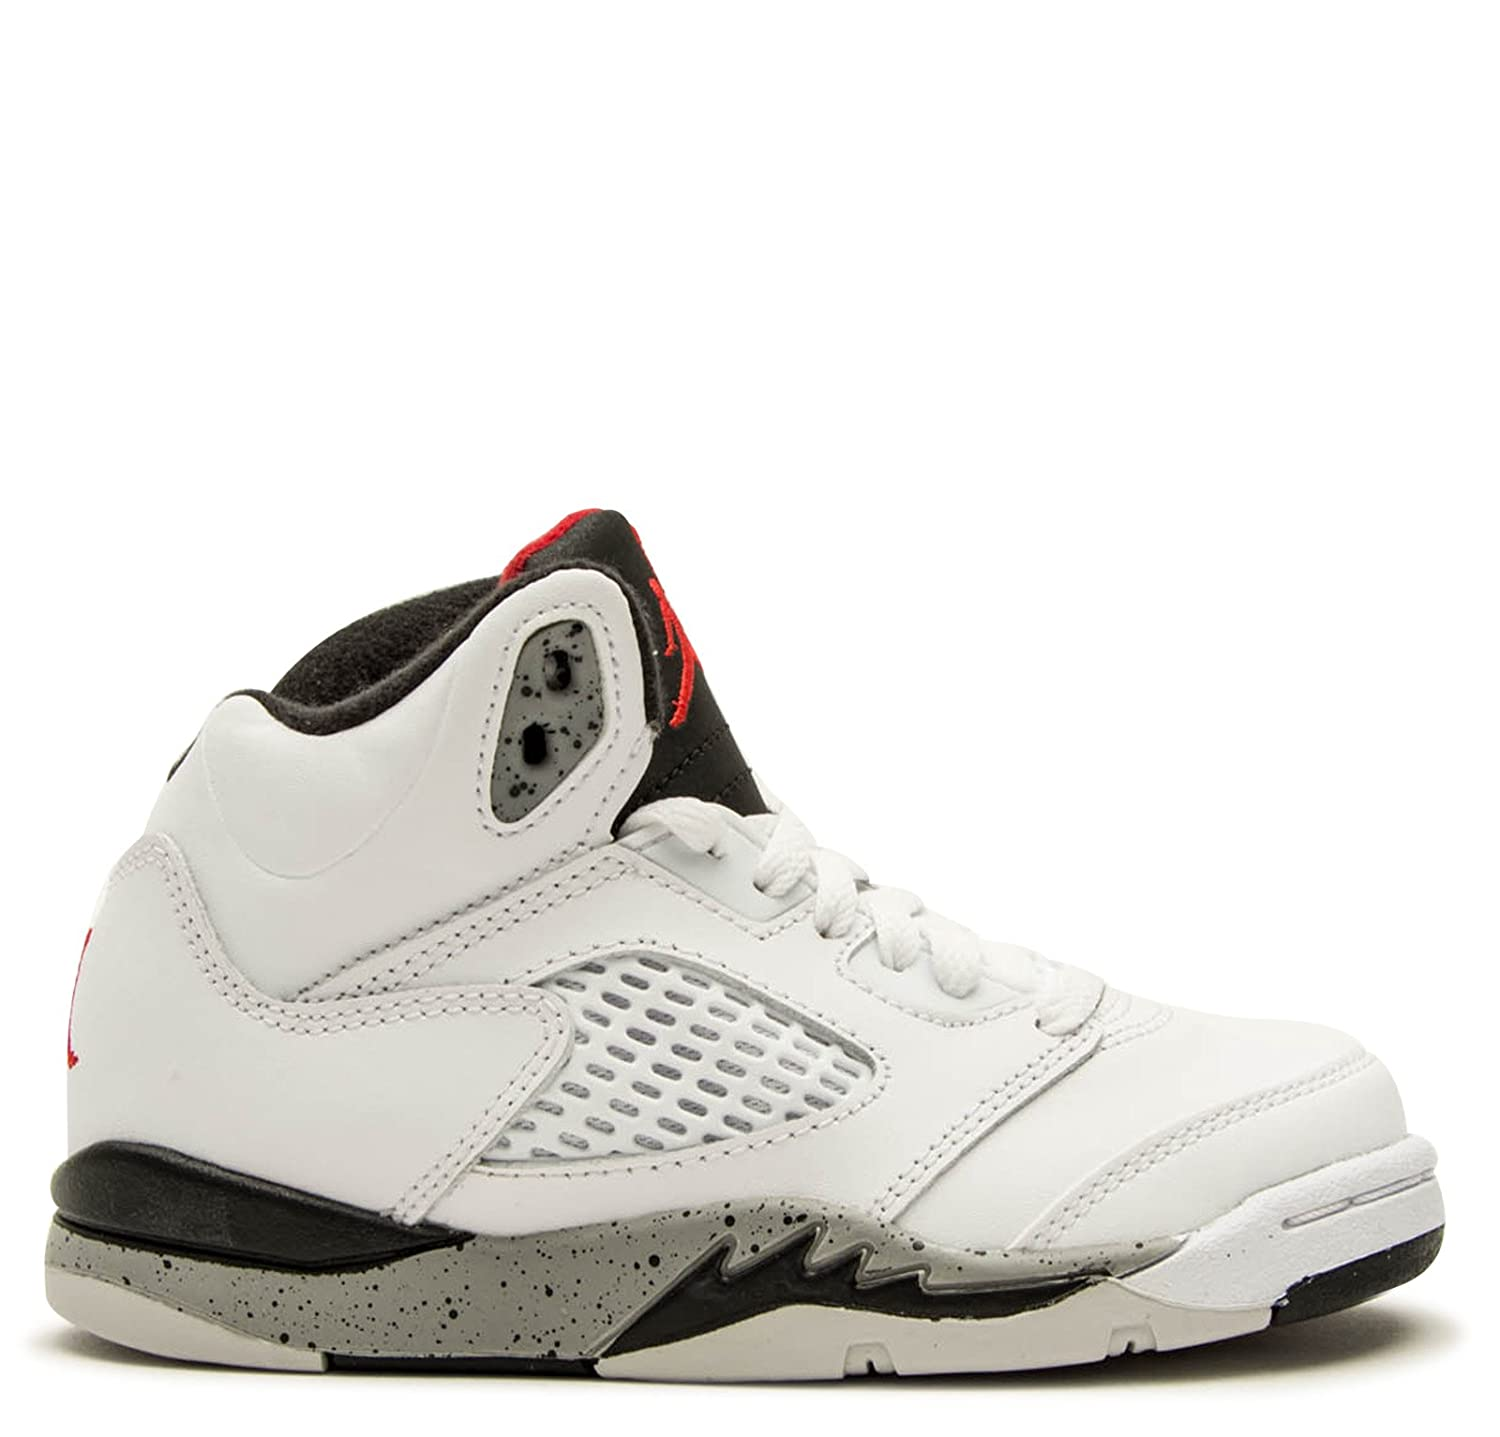 brand new 1ea29 35ad1 Amazon.com   Jordan Retro 5